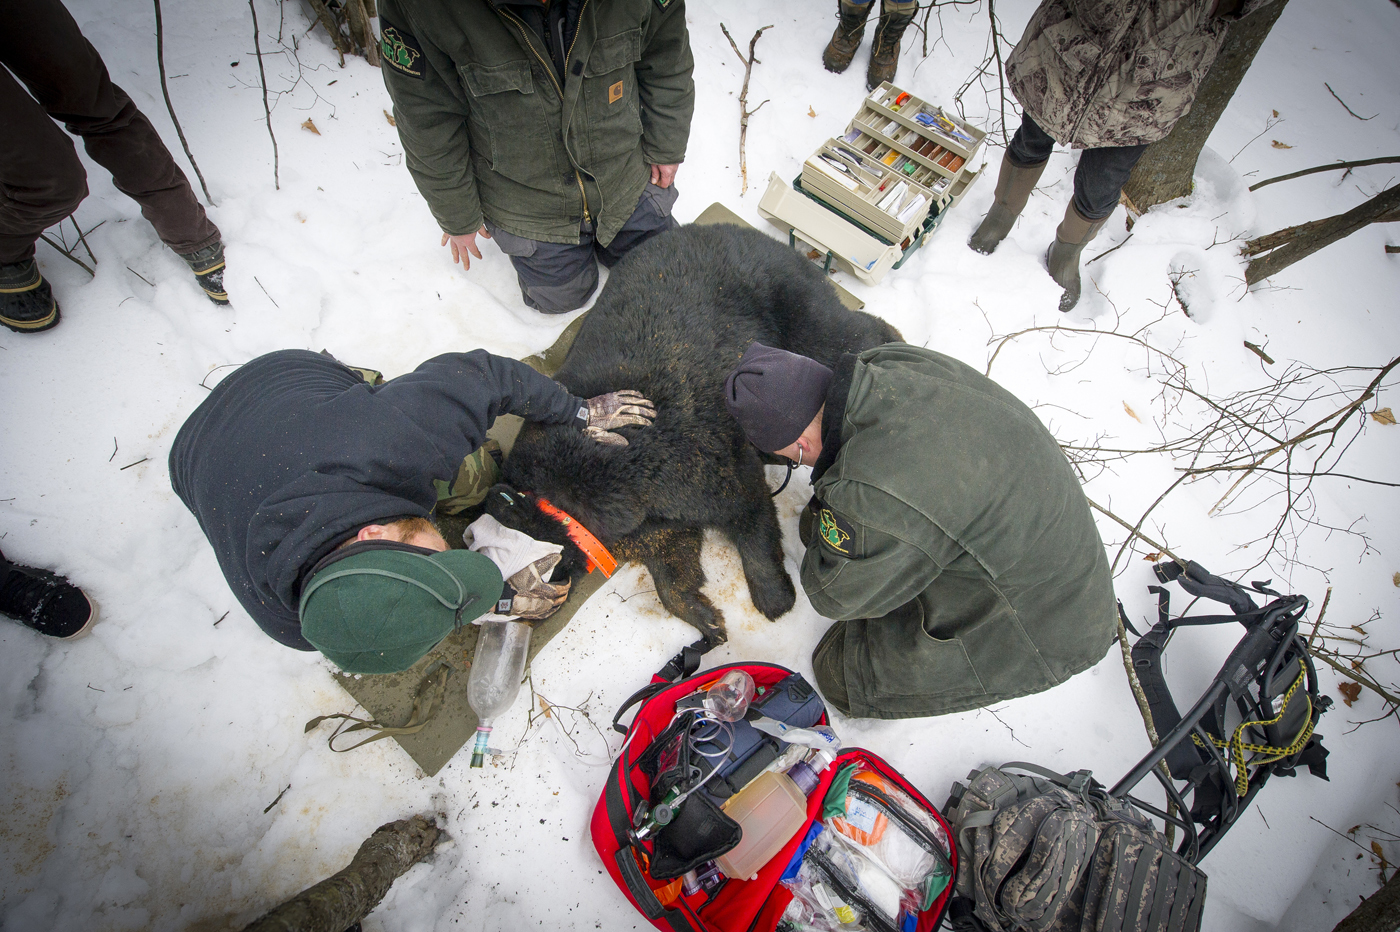 An overhead view shows a crew working on snow-covered ground to examine a black bear sow this winter.